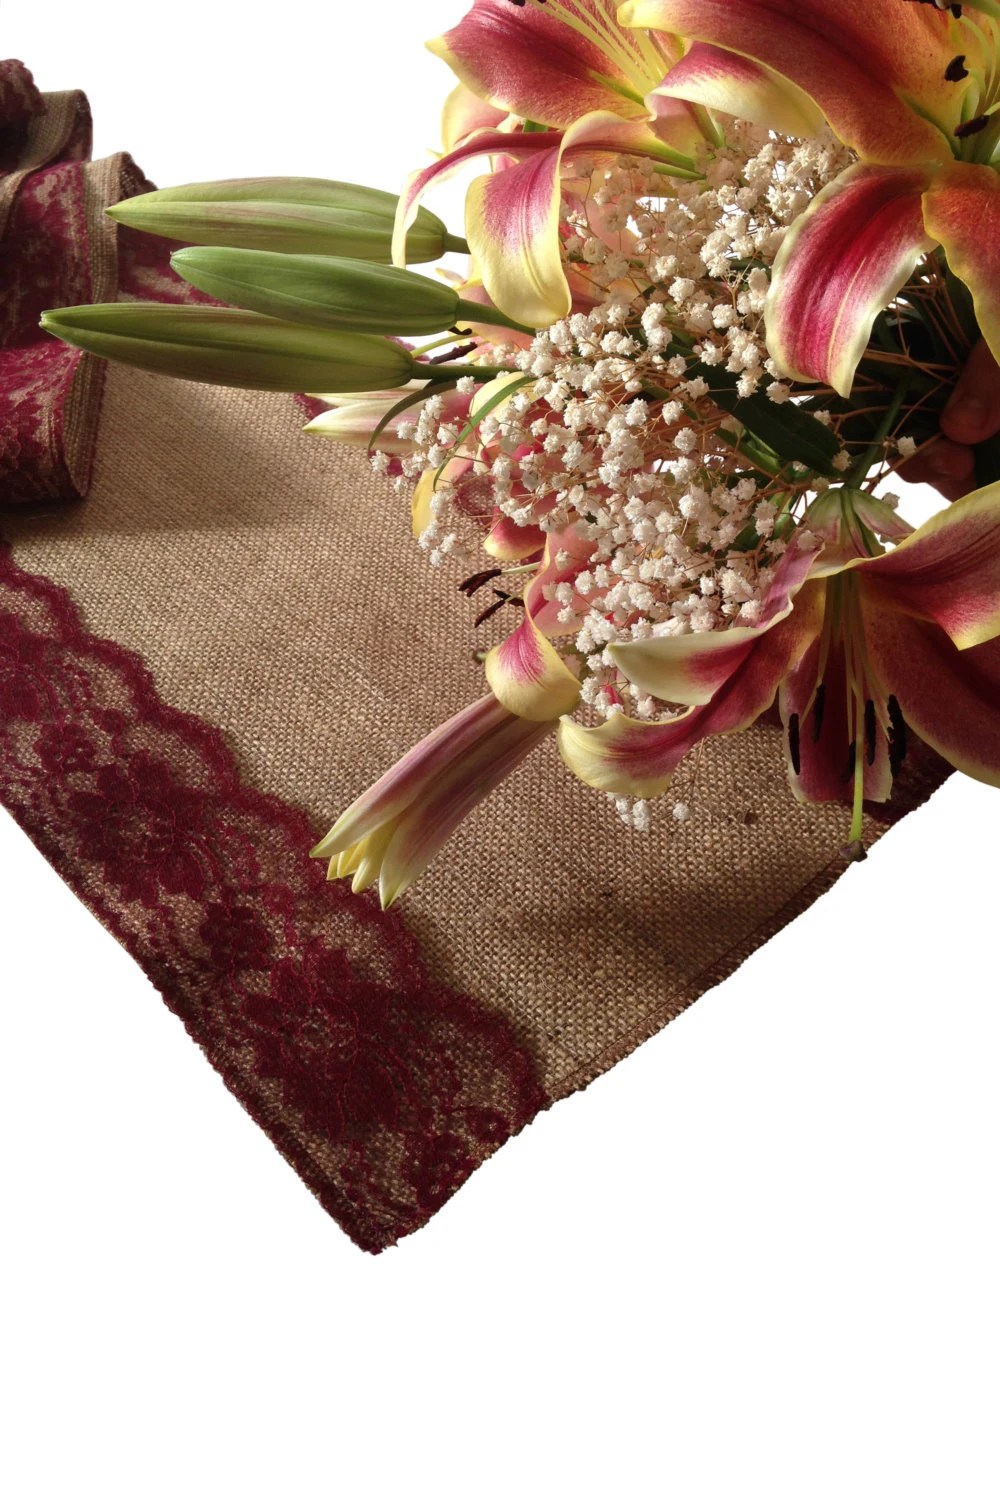 Burlap And BURGUNDY RED Lace Table Runner By DawnWeddingDesigns